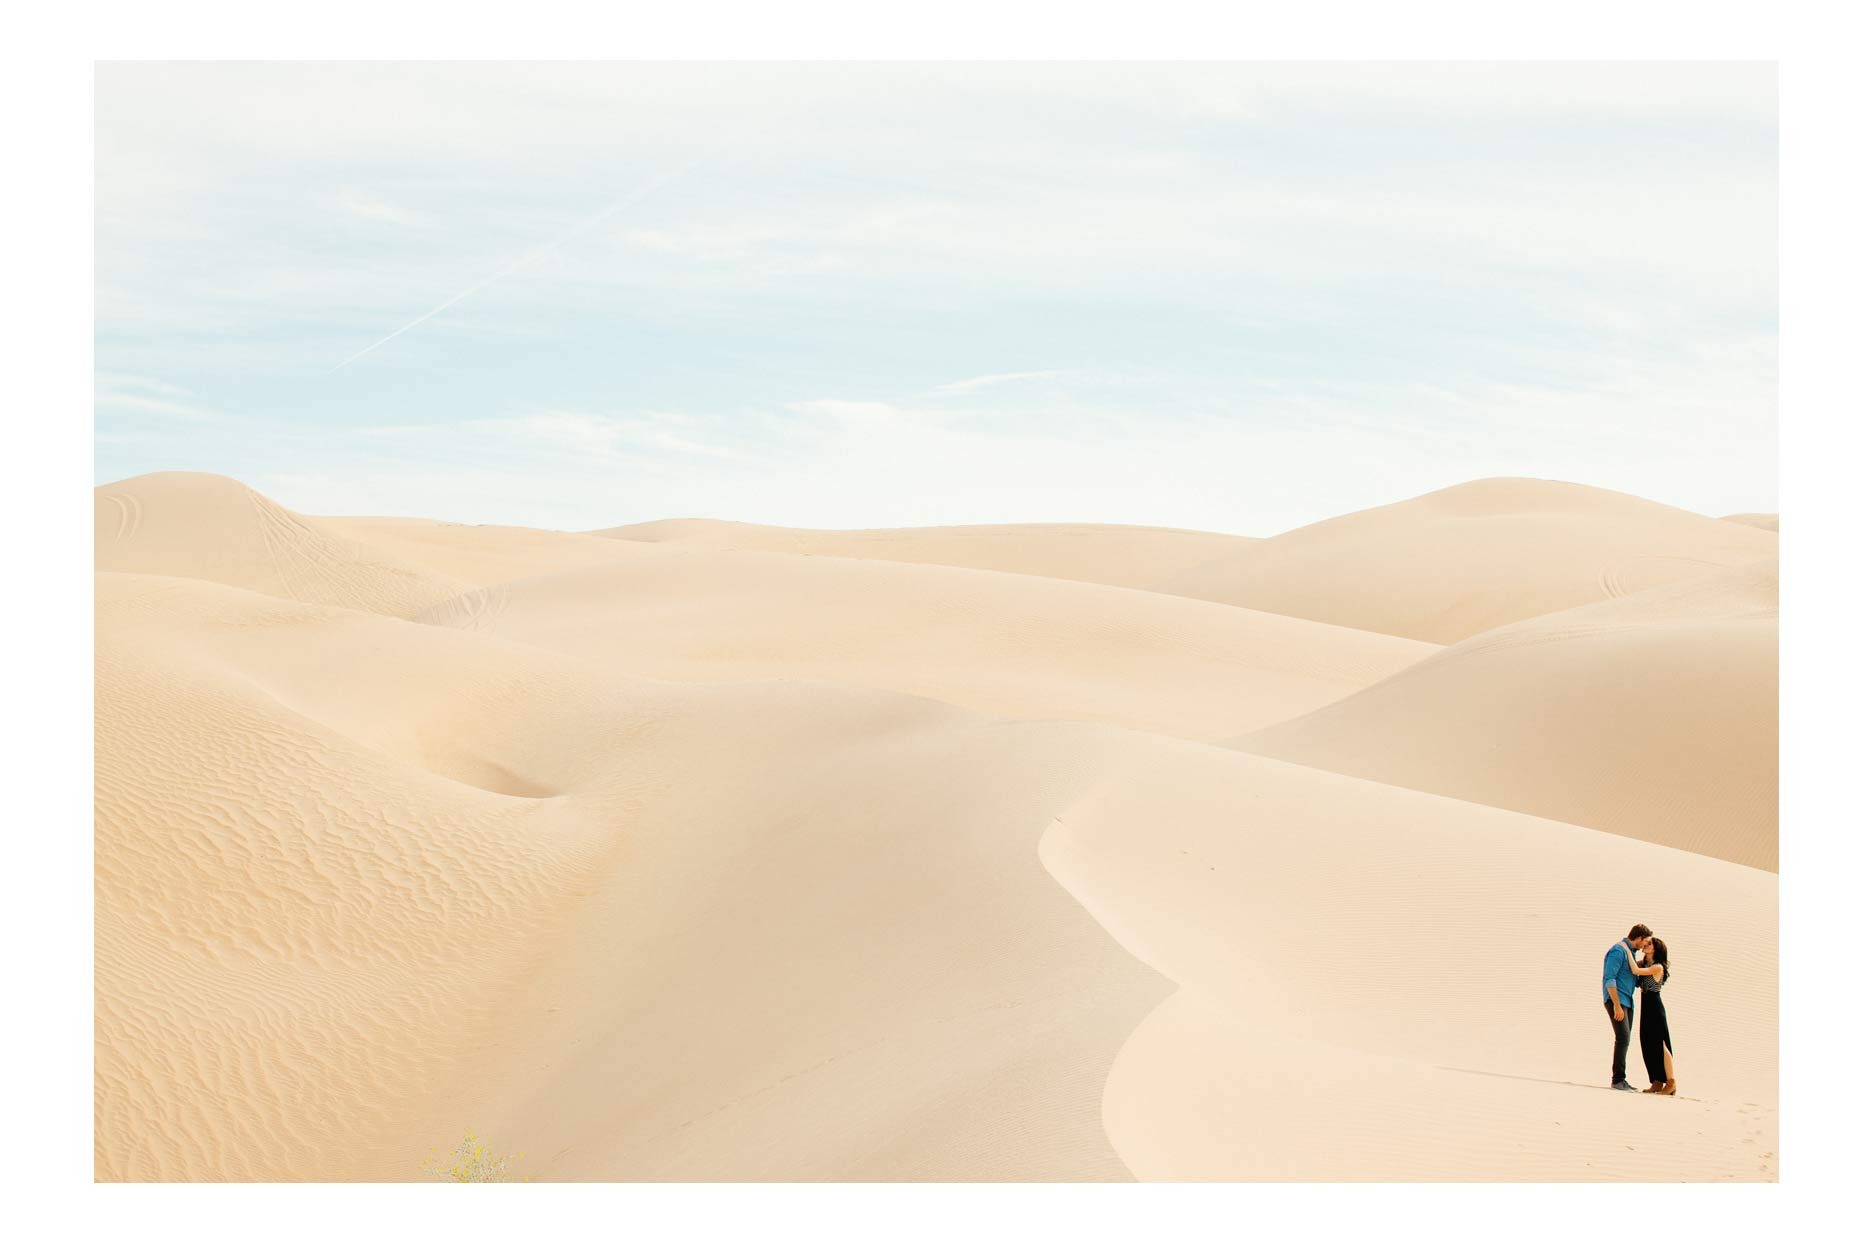 0-Pierre-olivier-Photography-_-Sand-Dunes